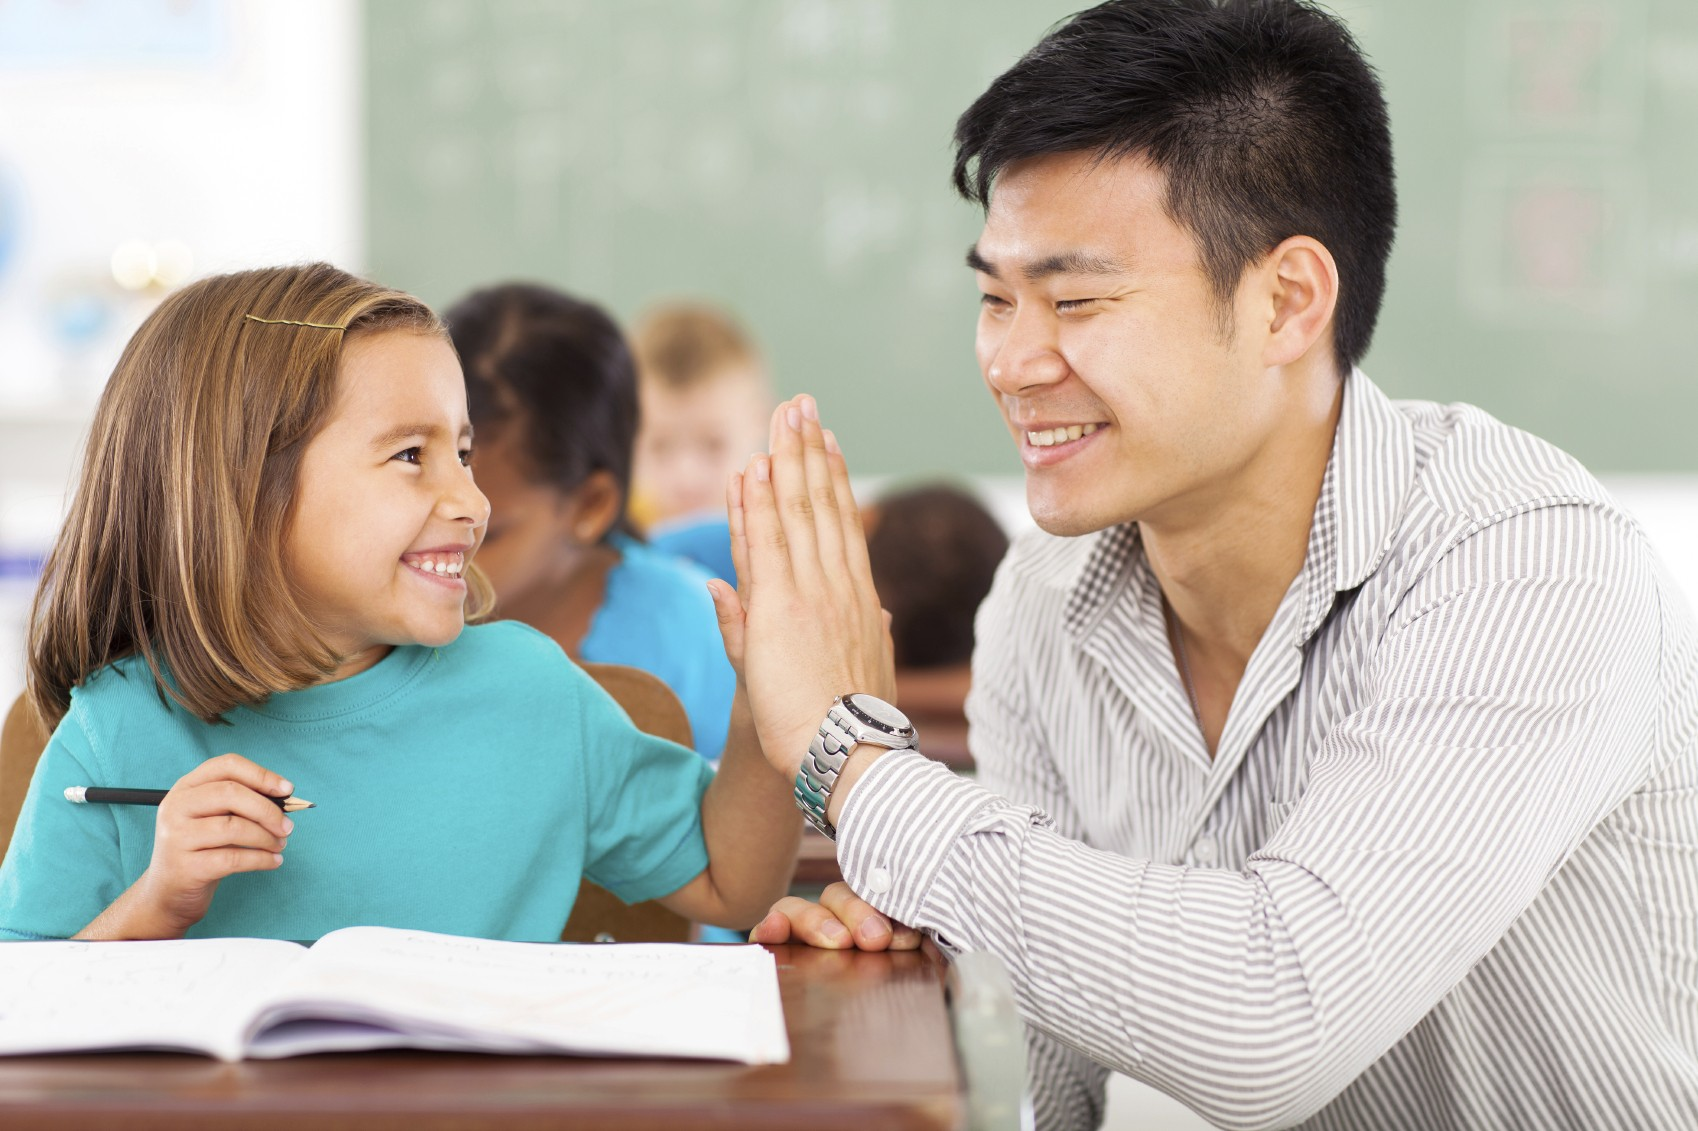 teacher and student high five in class